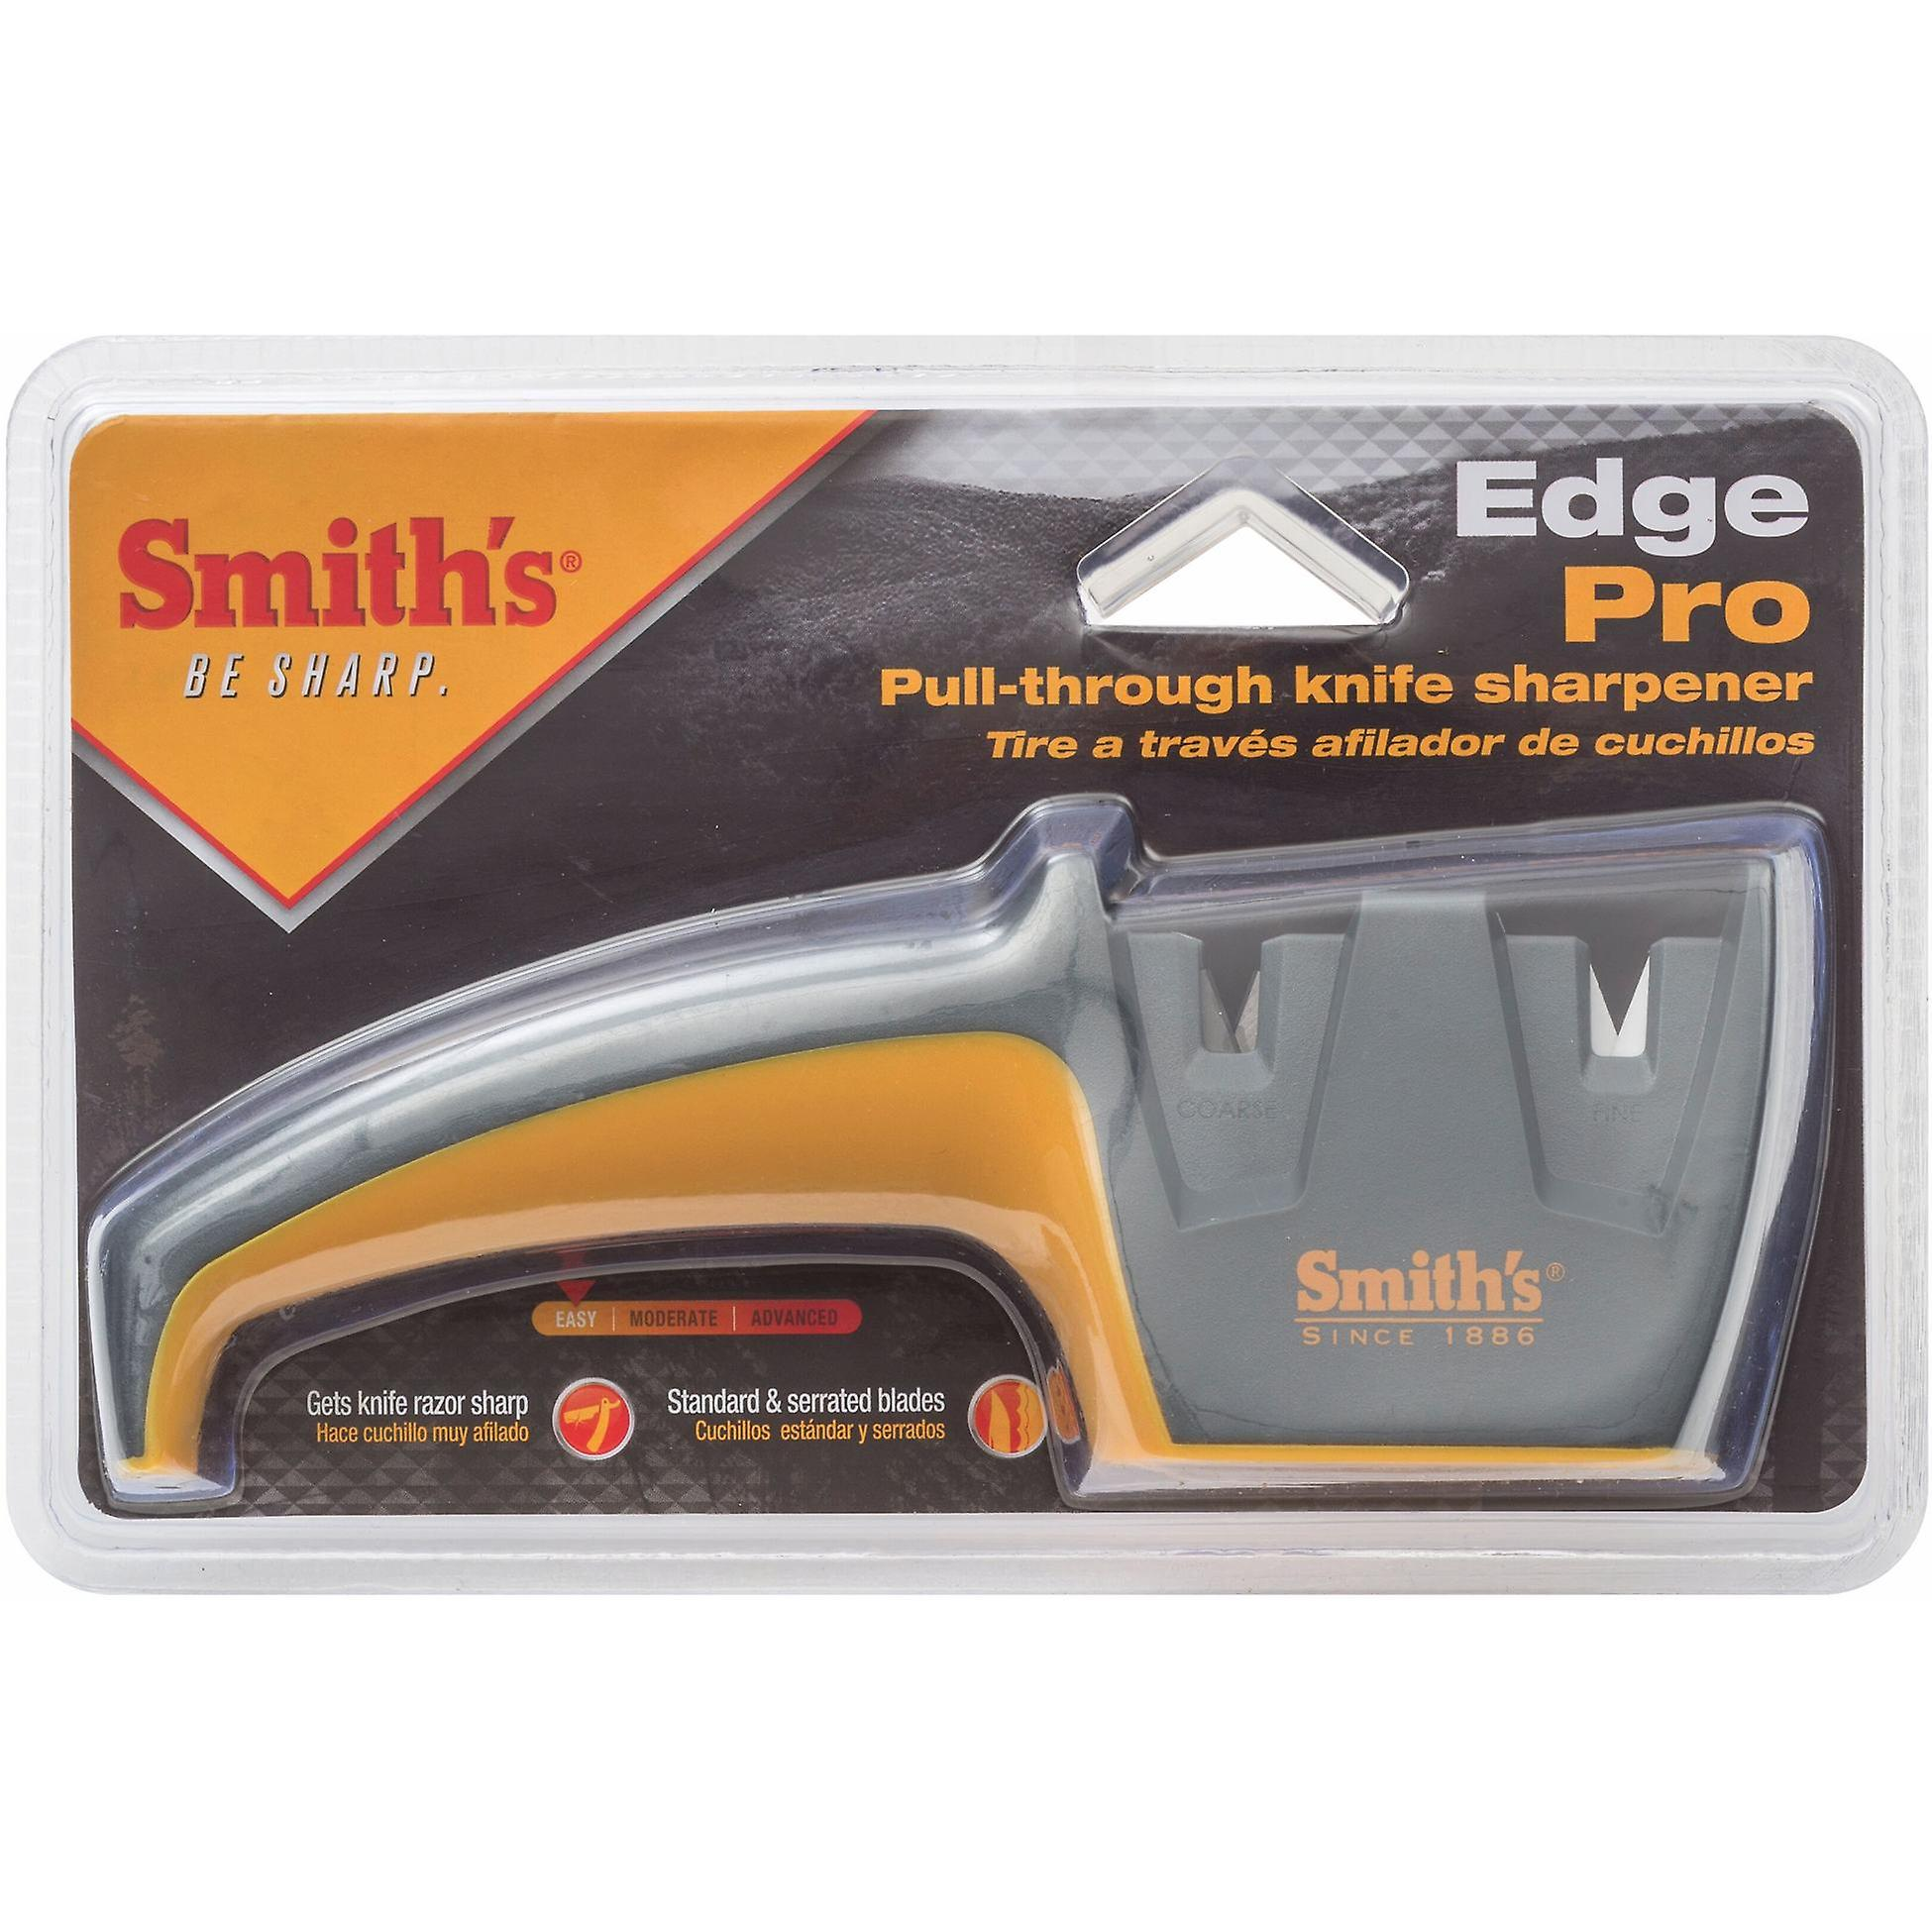 Smiths Edge Pro knife sharpener - pull through - coarse and fine sharpening